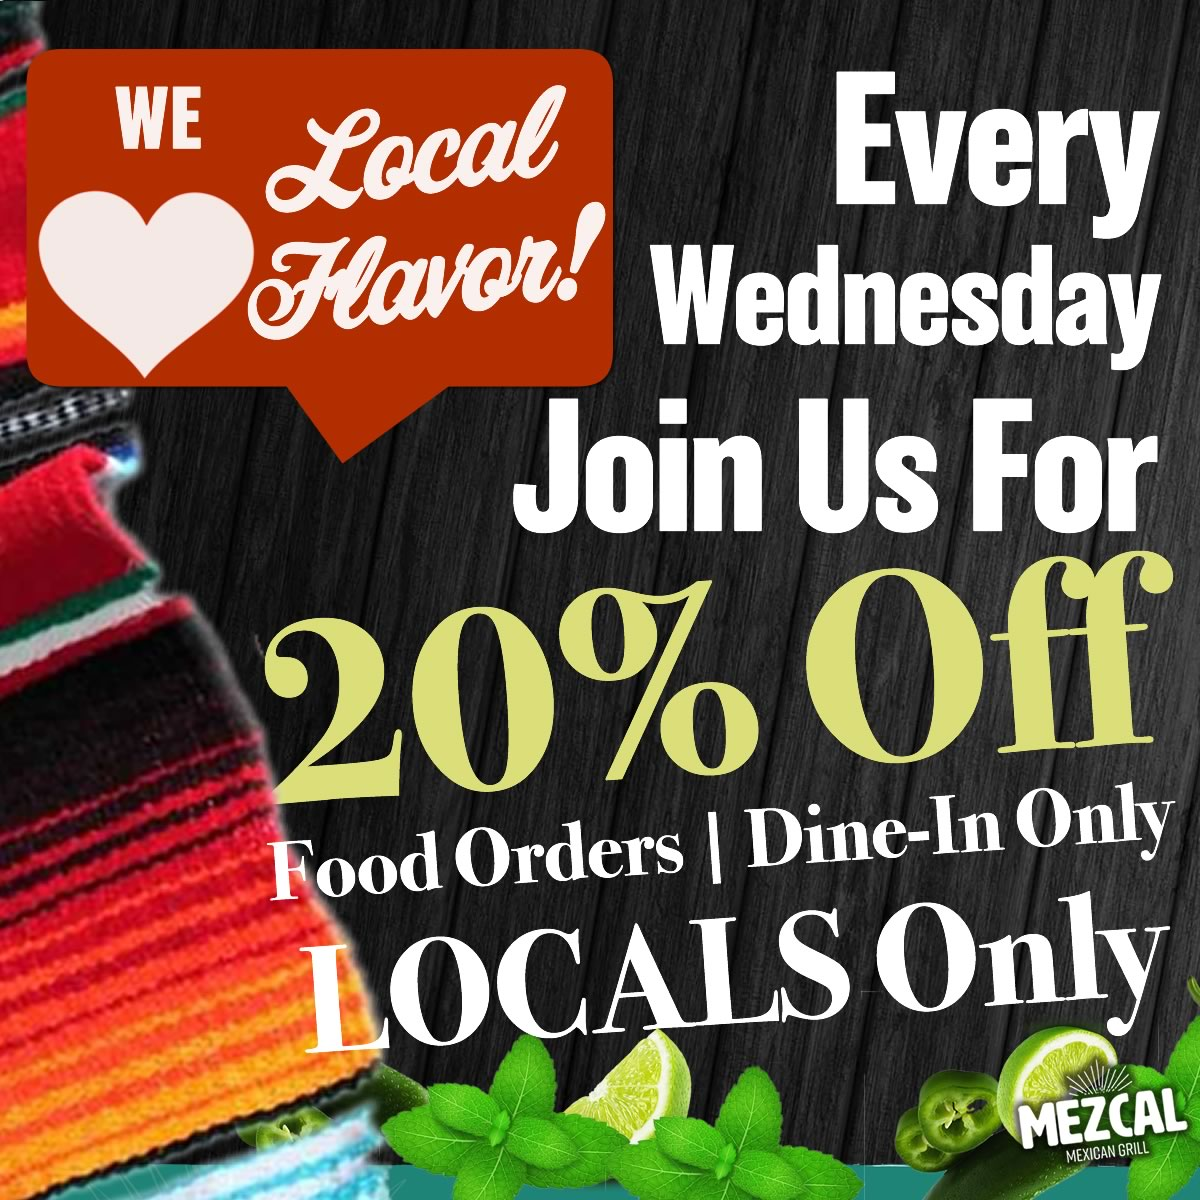 Locals Night 20% Off Mezcal Mexican Grill | Mezcal Mexican Grill Events and Entertainment